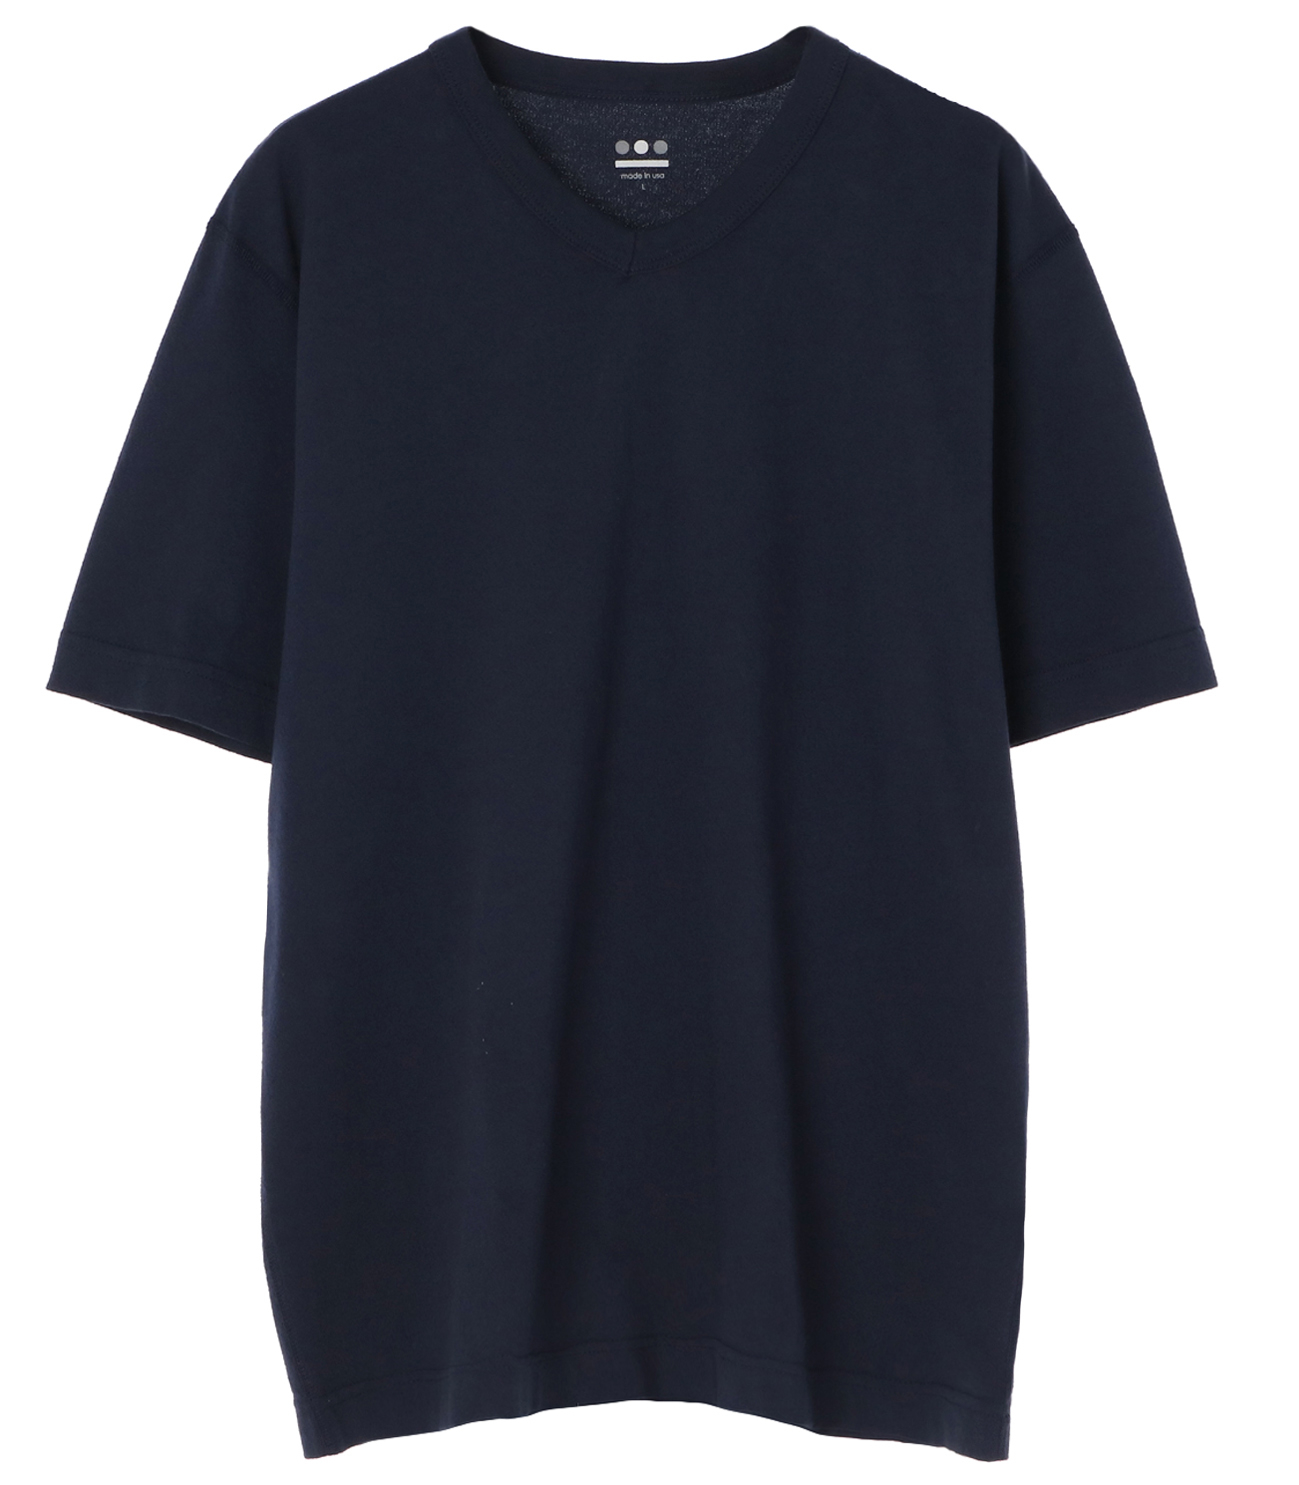 short slv v-neck 詳細画像 night iris 1